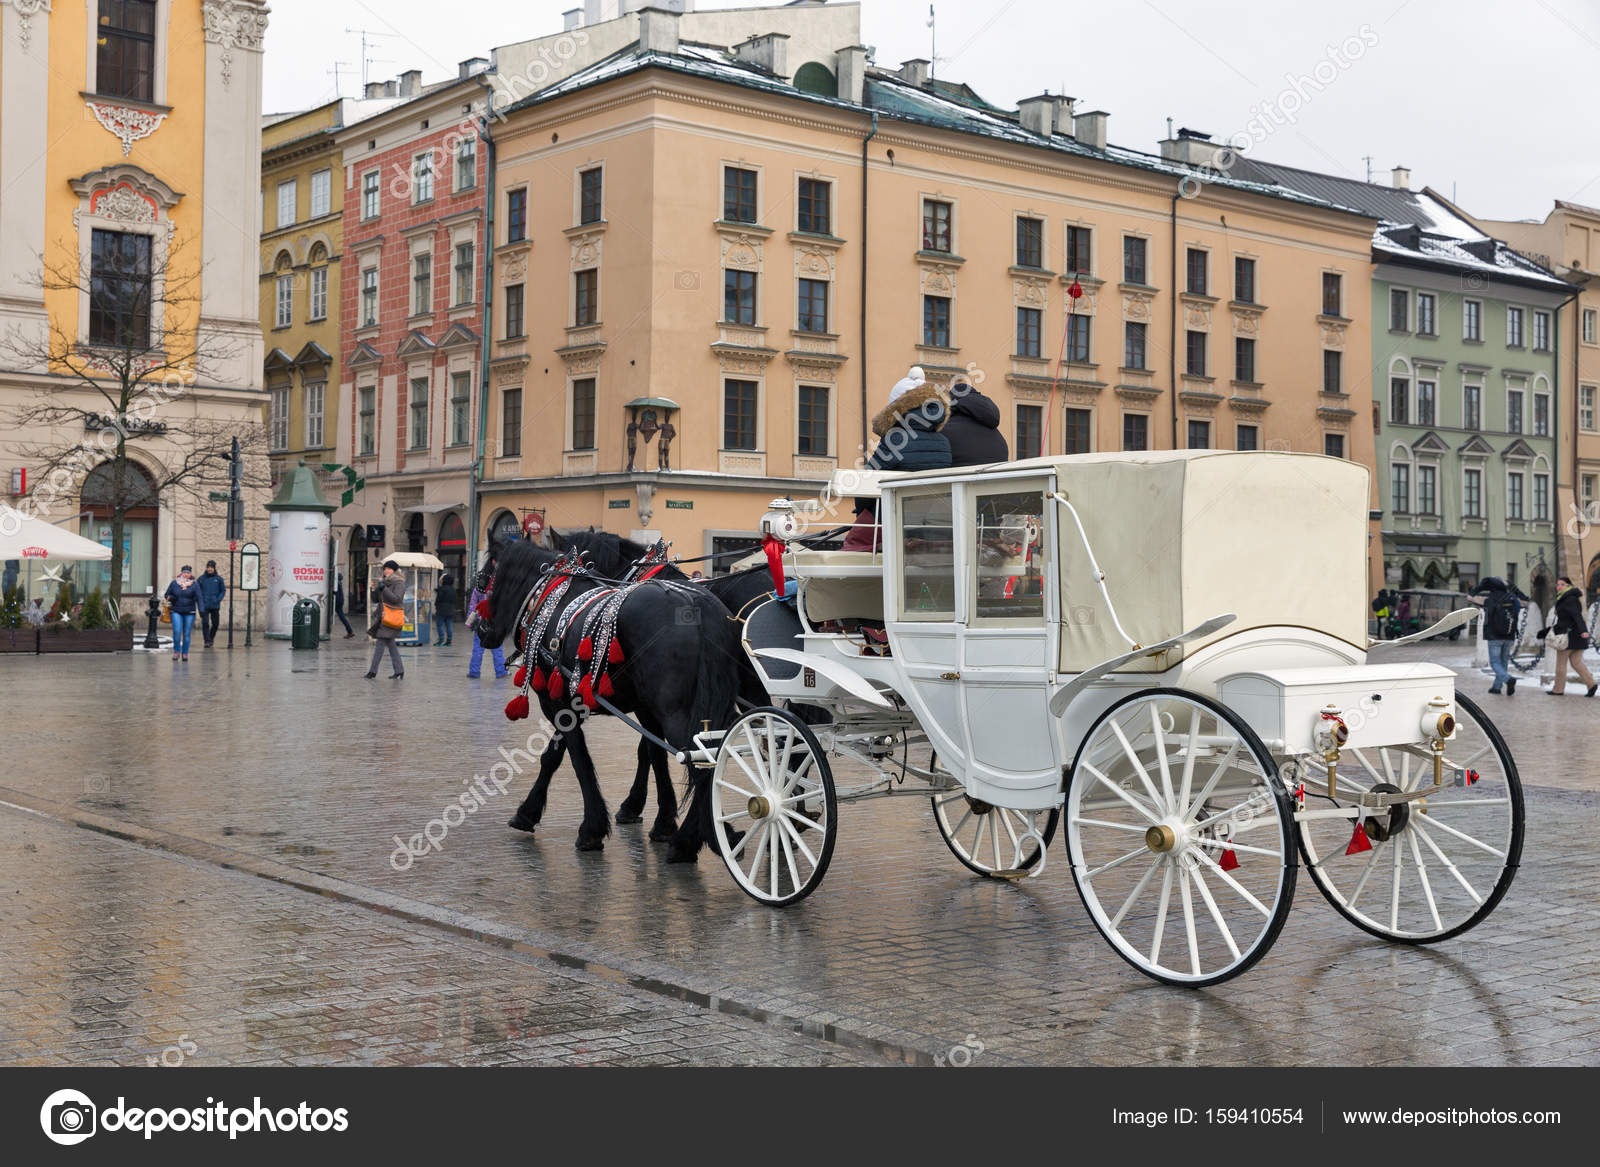 Horse Carriage In Krakow Old City Poland Stock Editorial Photo C Panama7 159410554